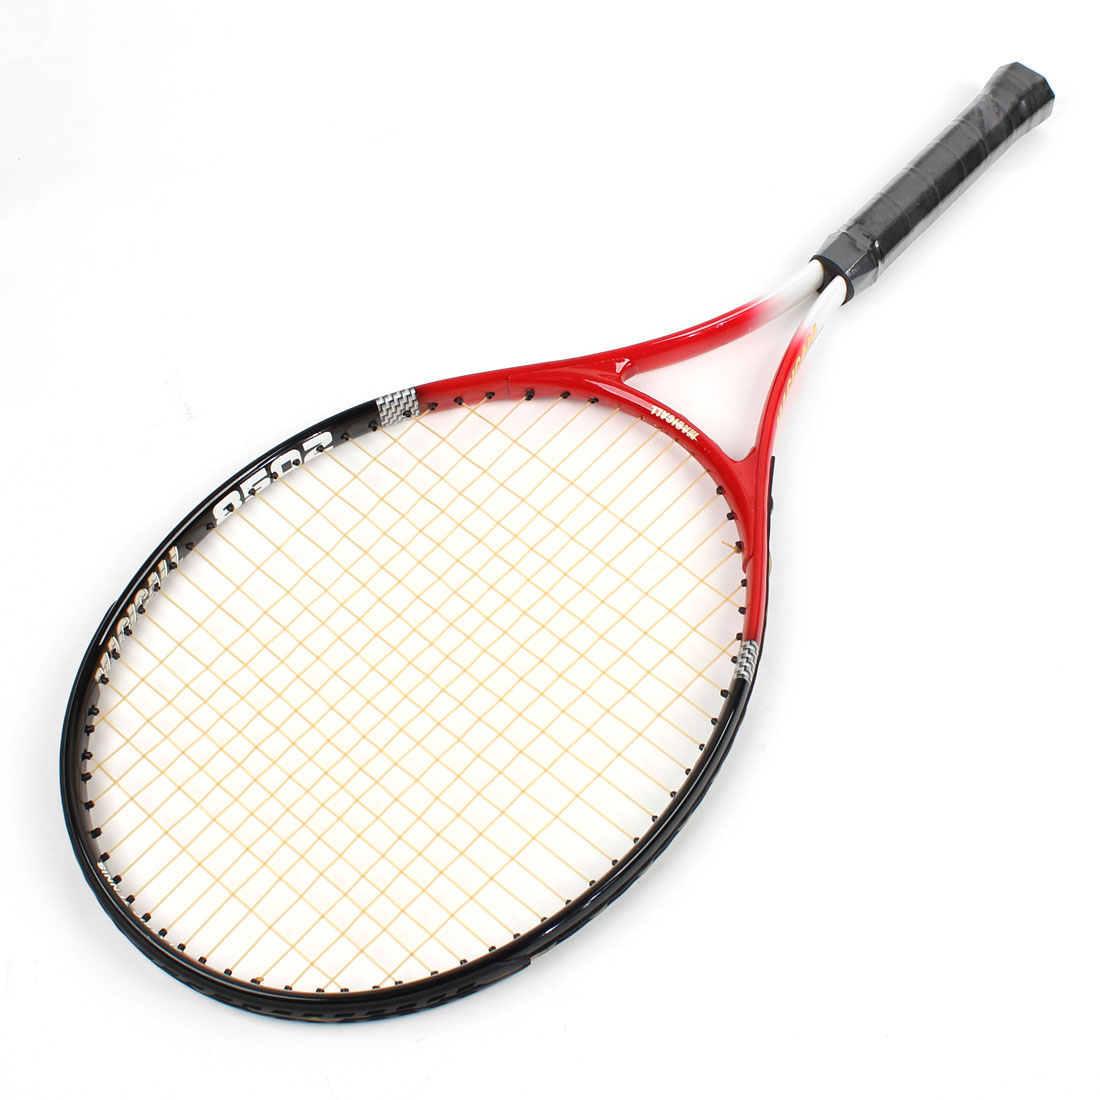 "Outdoor Activity 4 5/8"" Grip Carbon Aluminum Alloy Tennis Racket Racquet"